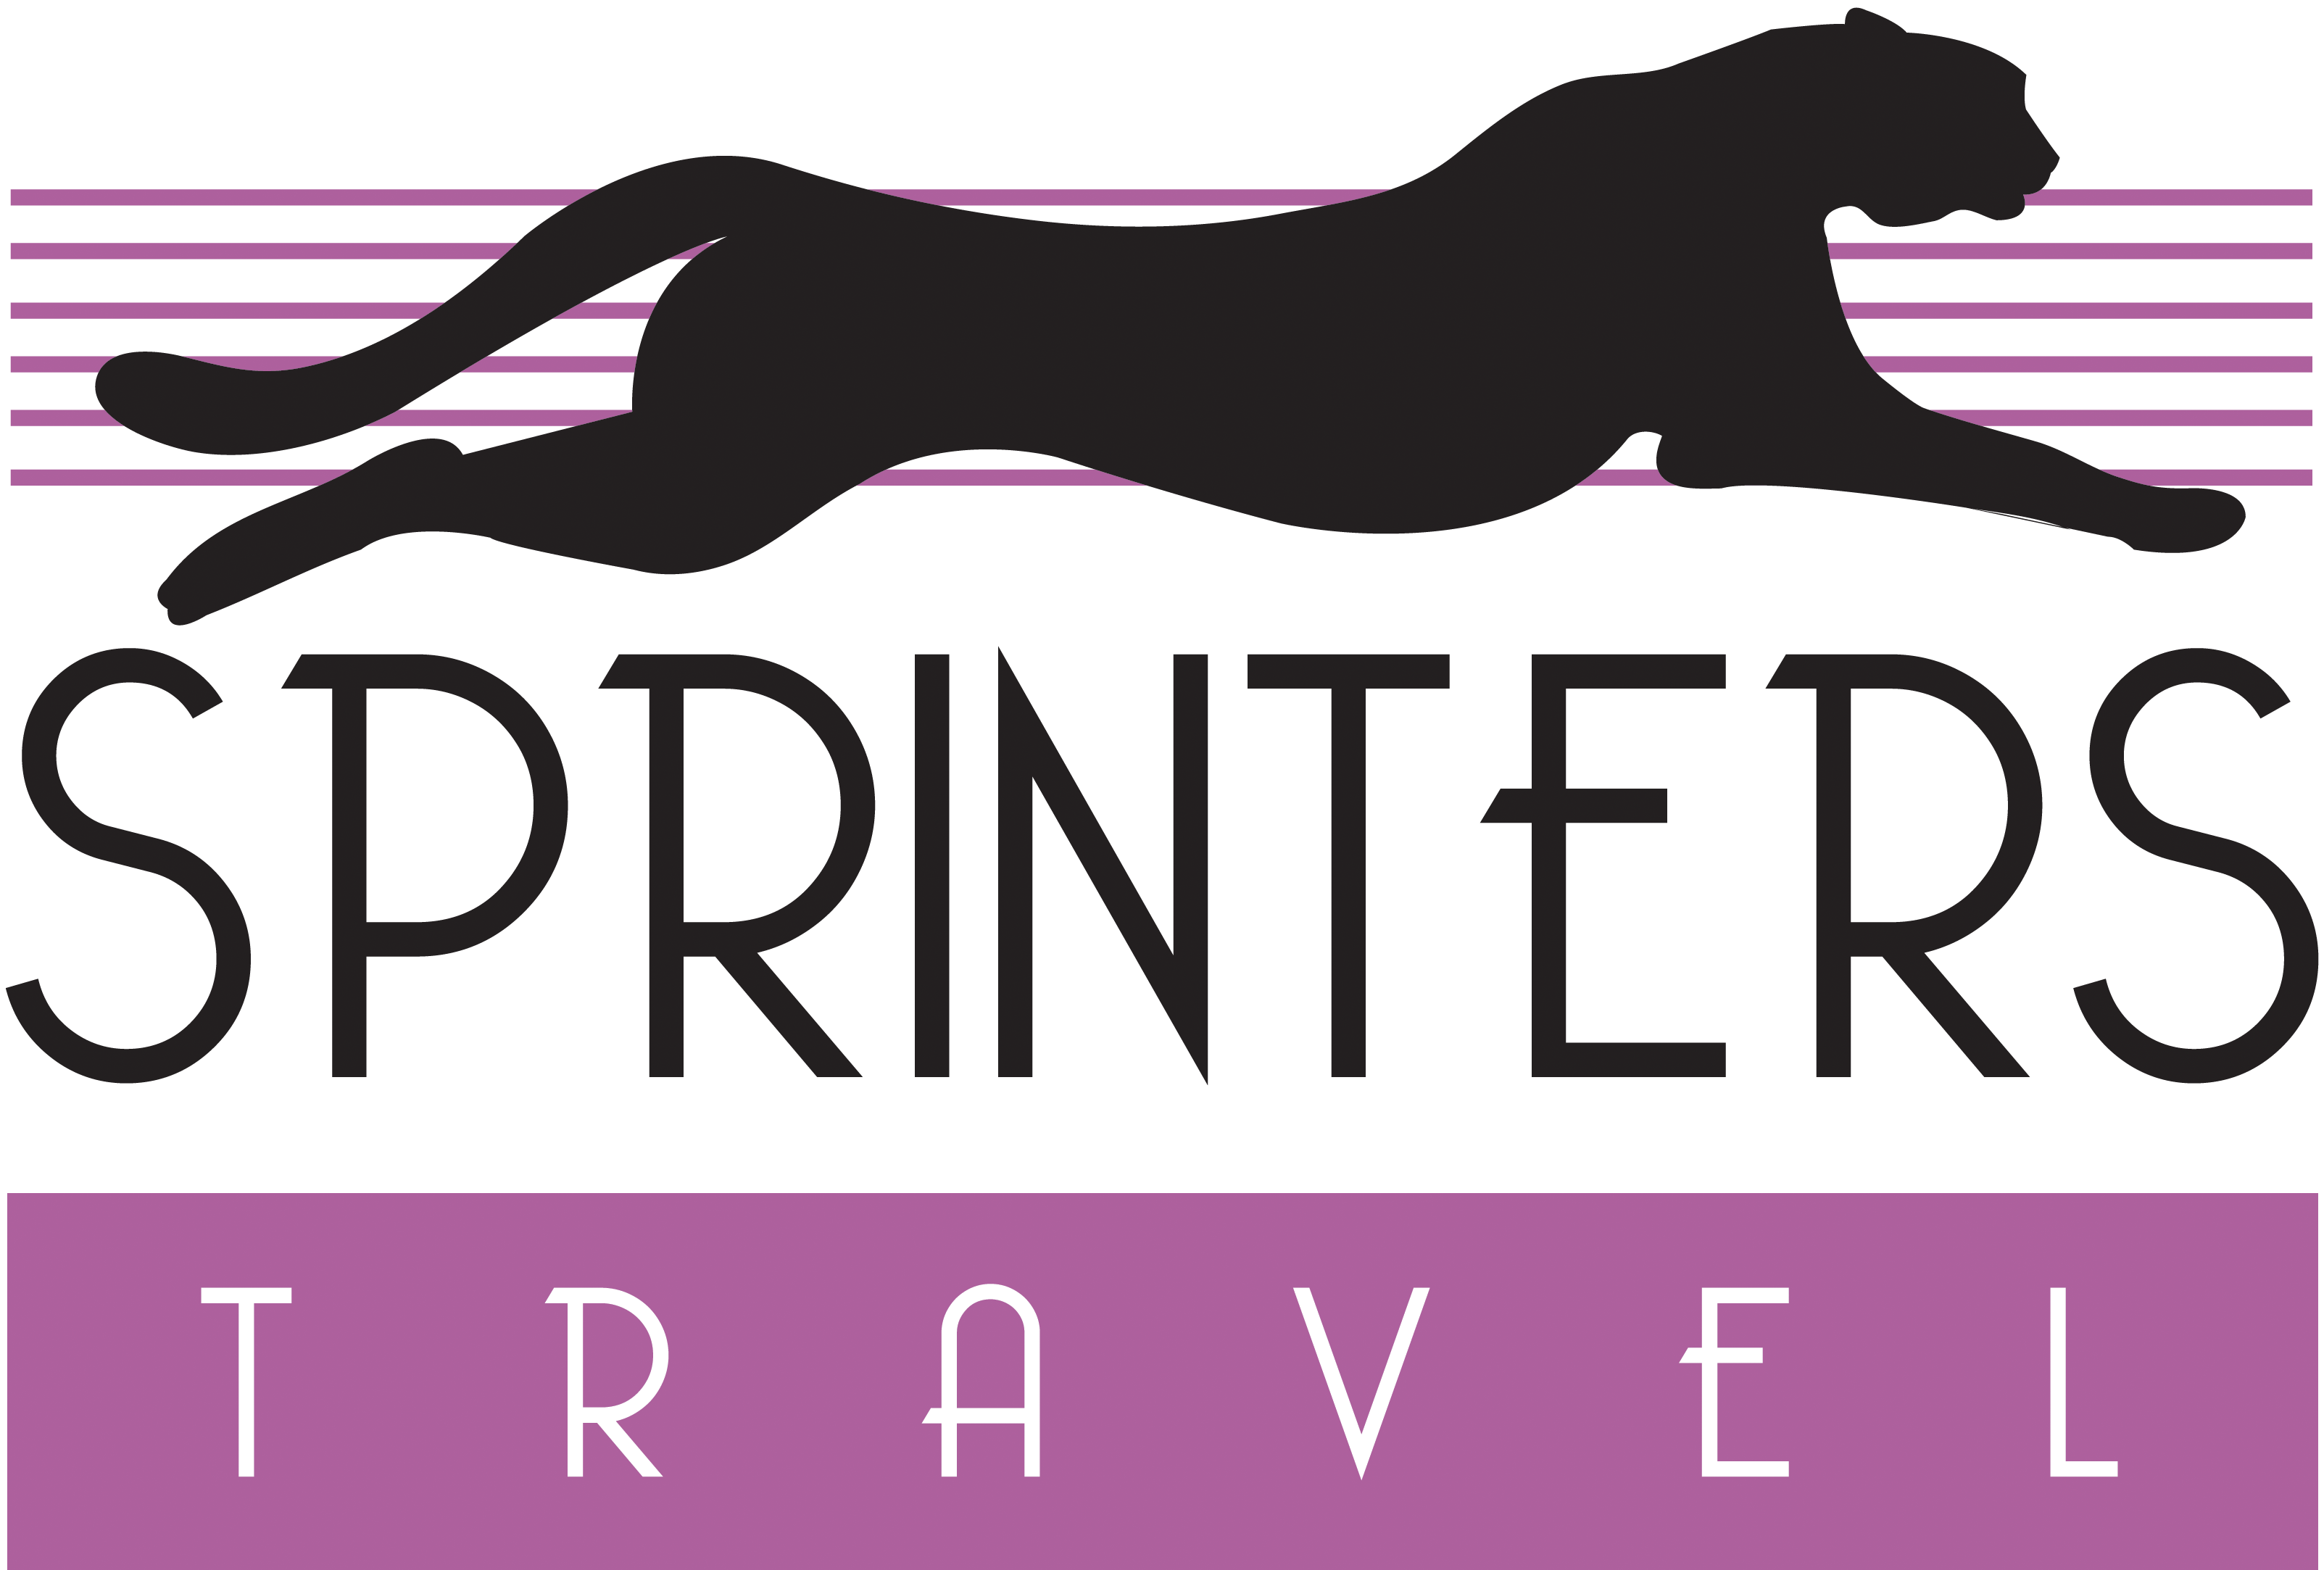 Sprinters Travel | Trailer Hire Bucks | Car | Minibus | Buckinghamshire